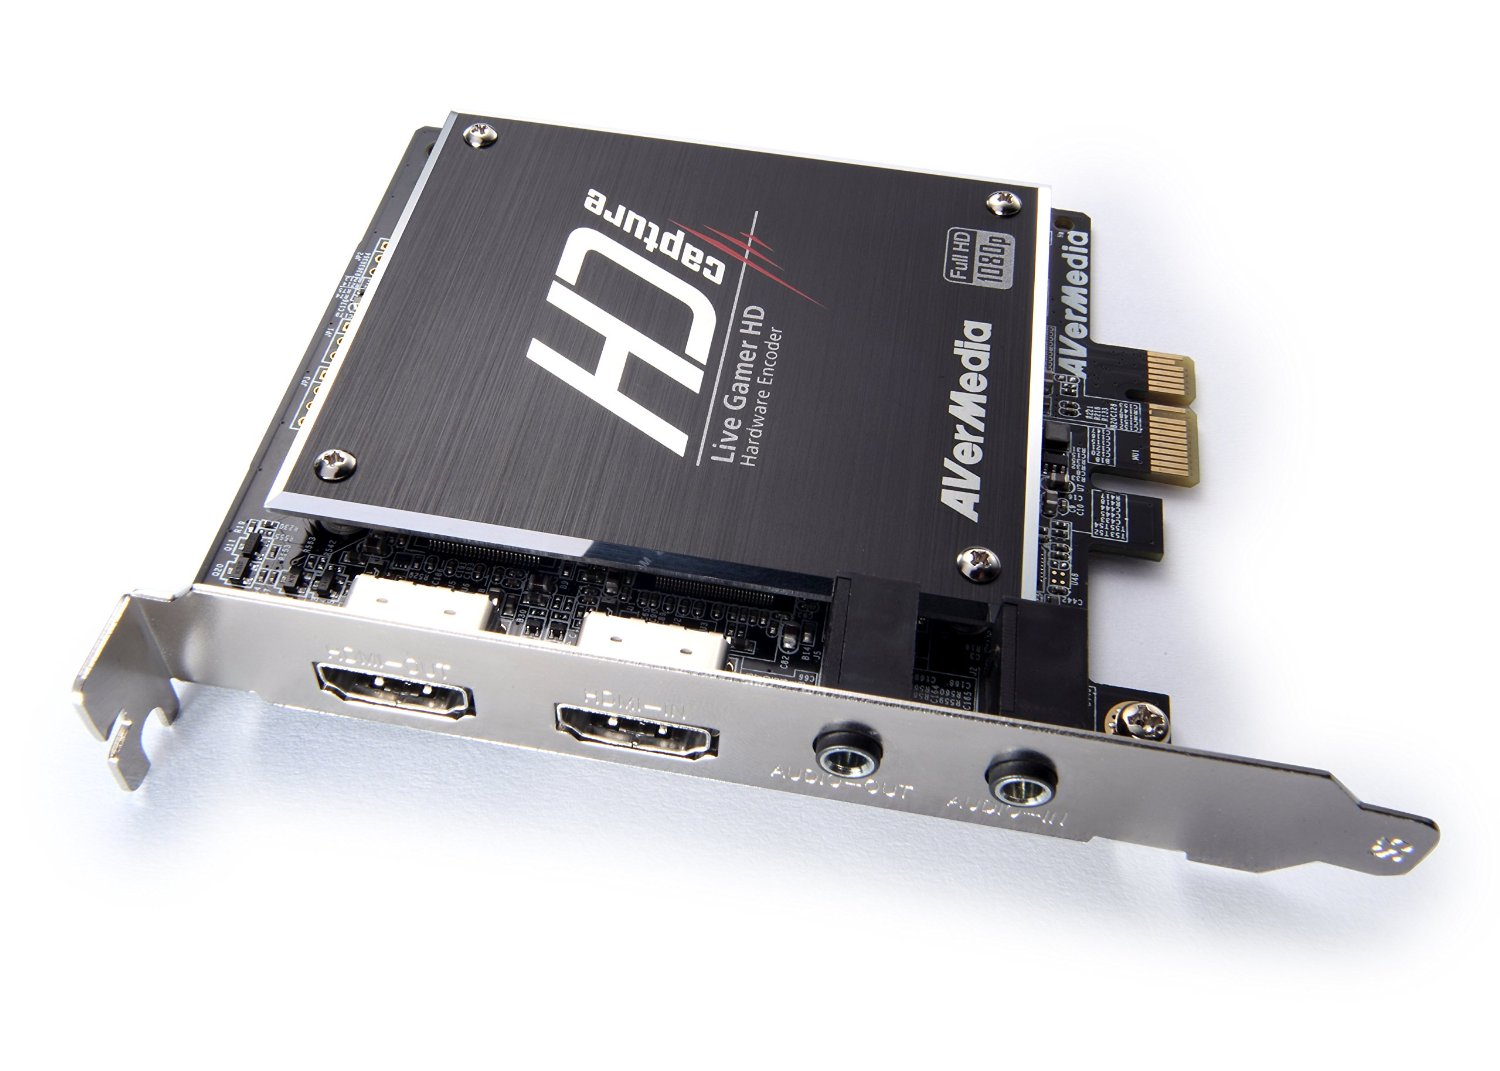 Avermedia LiveGamer HD is an example of a PCIe-card with a hardware encoder